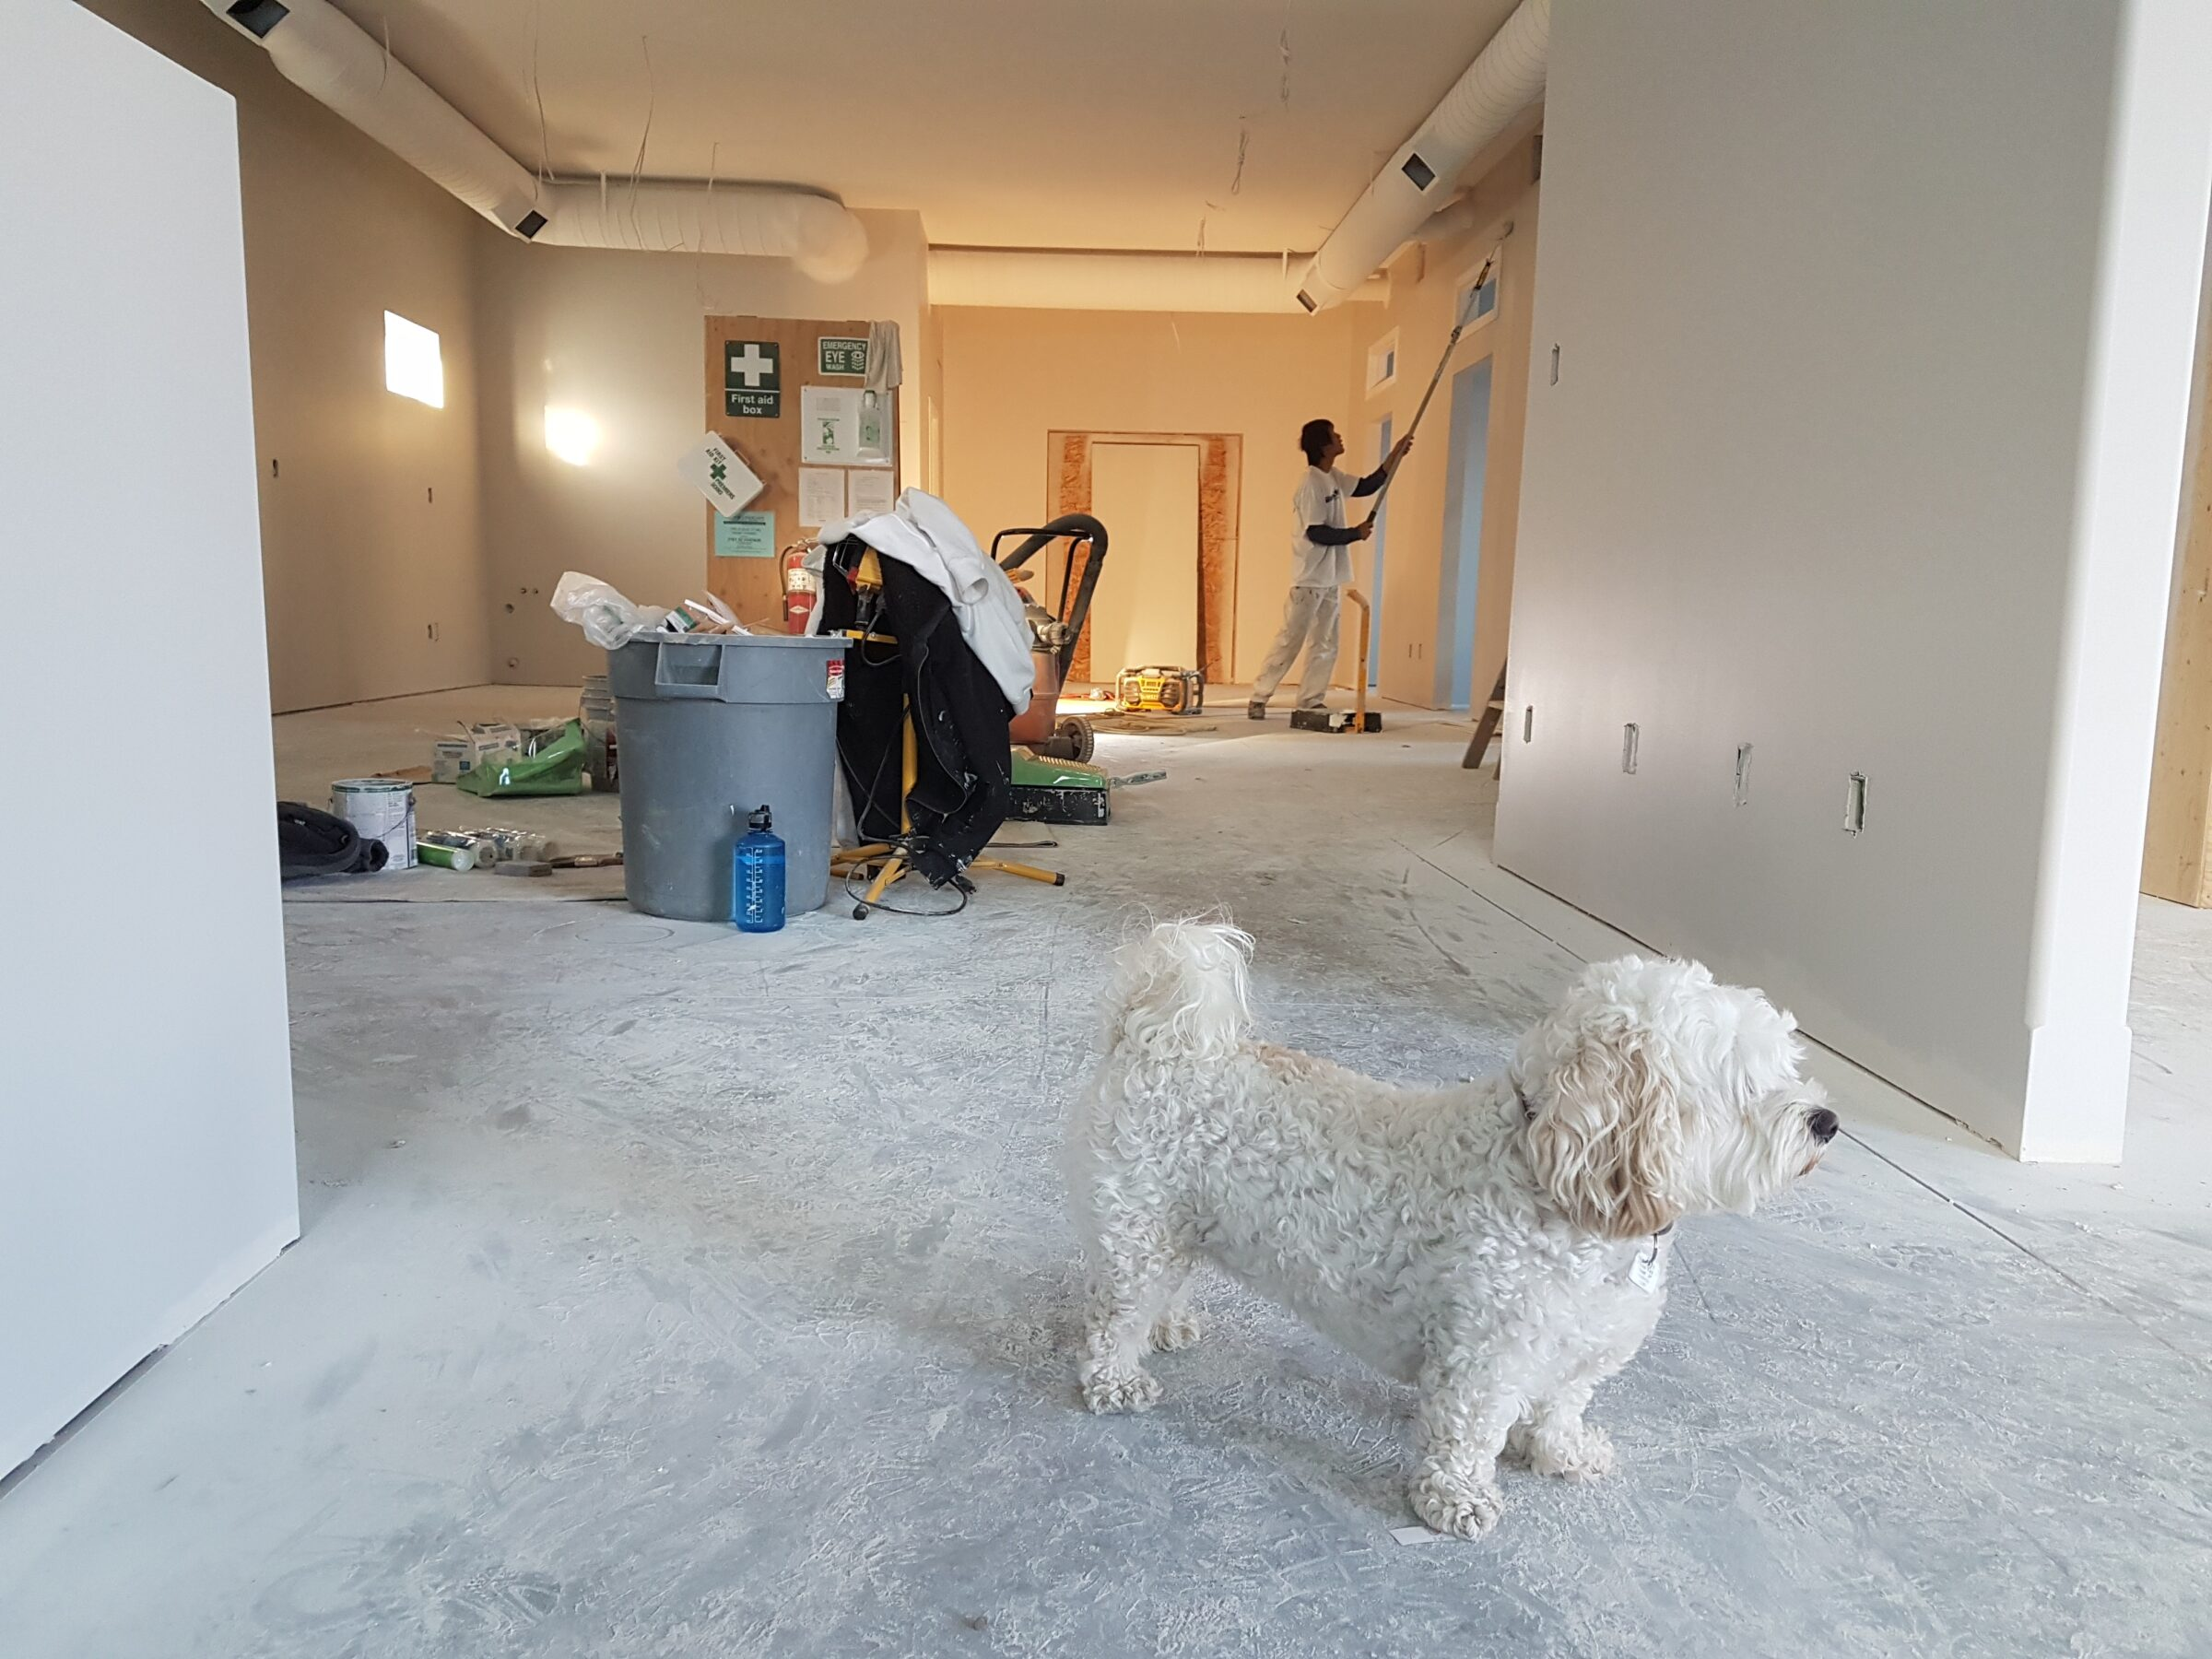 White miniature poodle in foreground of large empty apartment renovation. Mam painting walls. Dusty Unfinished Floor.